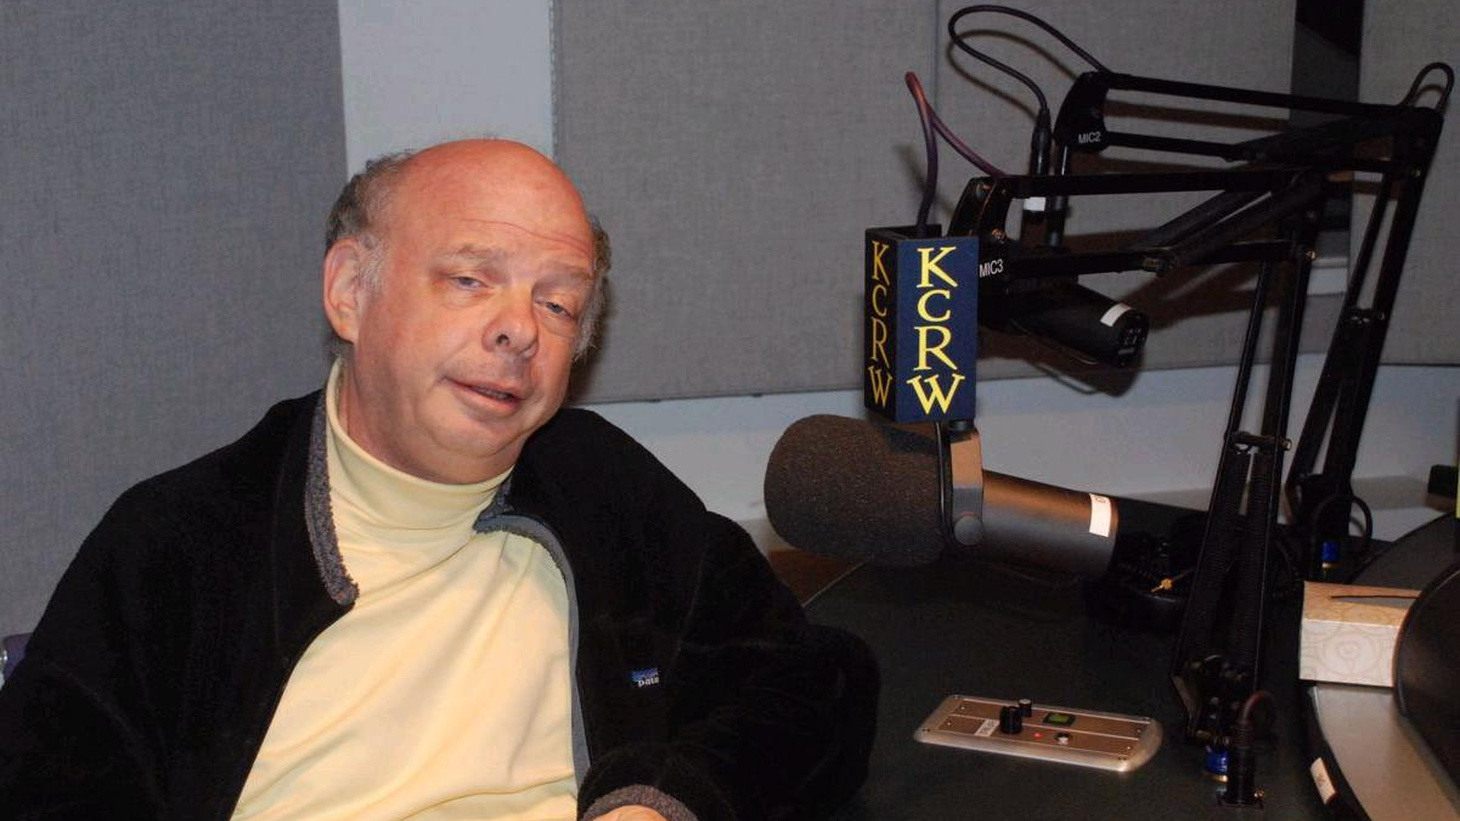 Wallace Shawn's newest play intermingles fact and fantasy in such a bizarre and original way that one would have to see (or even read) the play two or three times to get things (relatively) straight. Shawn discusses innovative theater in relation to his political beliefs as expressed in his new collection of essays.